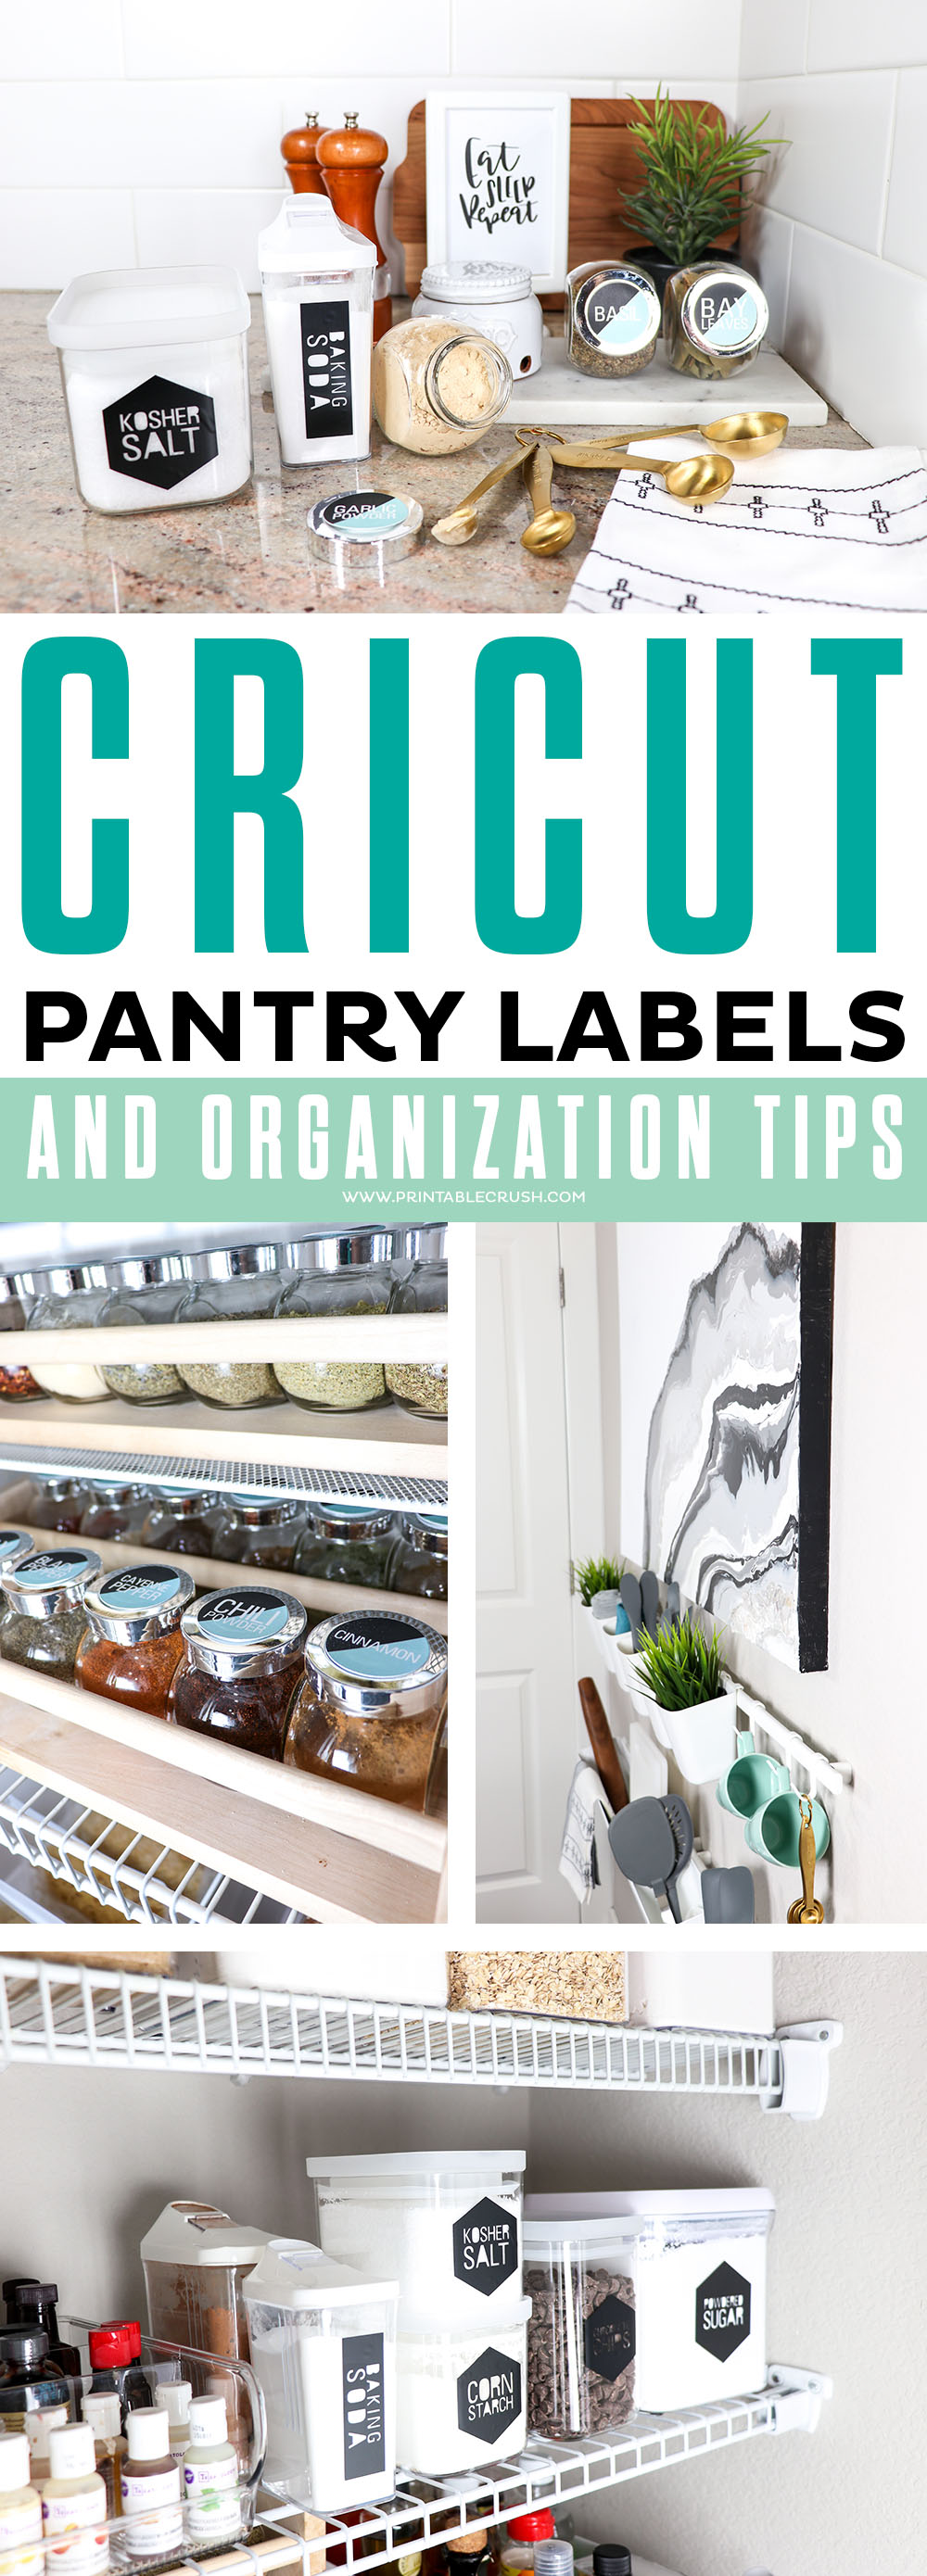 Get these FREE Modern Cricut Pantry Labels and some pantry organization tips to keep your kitchen tidy! #cricutmade #cricutmaker #vinylpantrylabels #pantrylabels #kitchendecor #moderndecor #cricutcrafts #homedecor #organization #pantry via @printablecrush